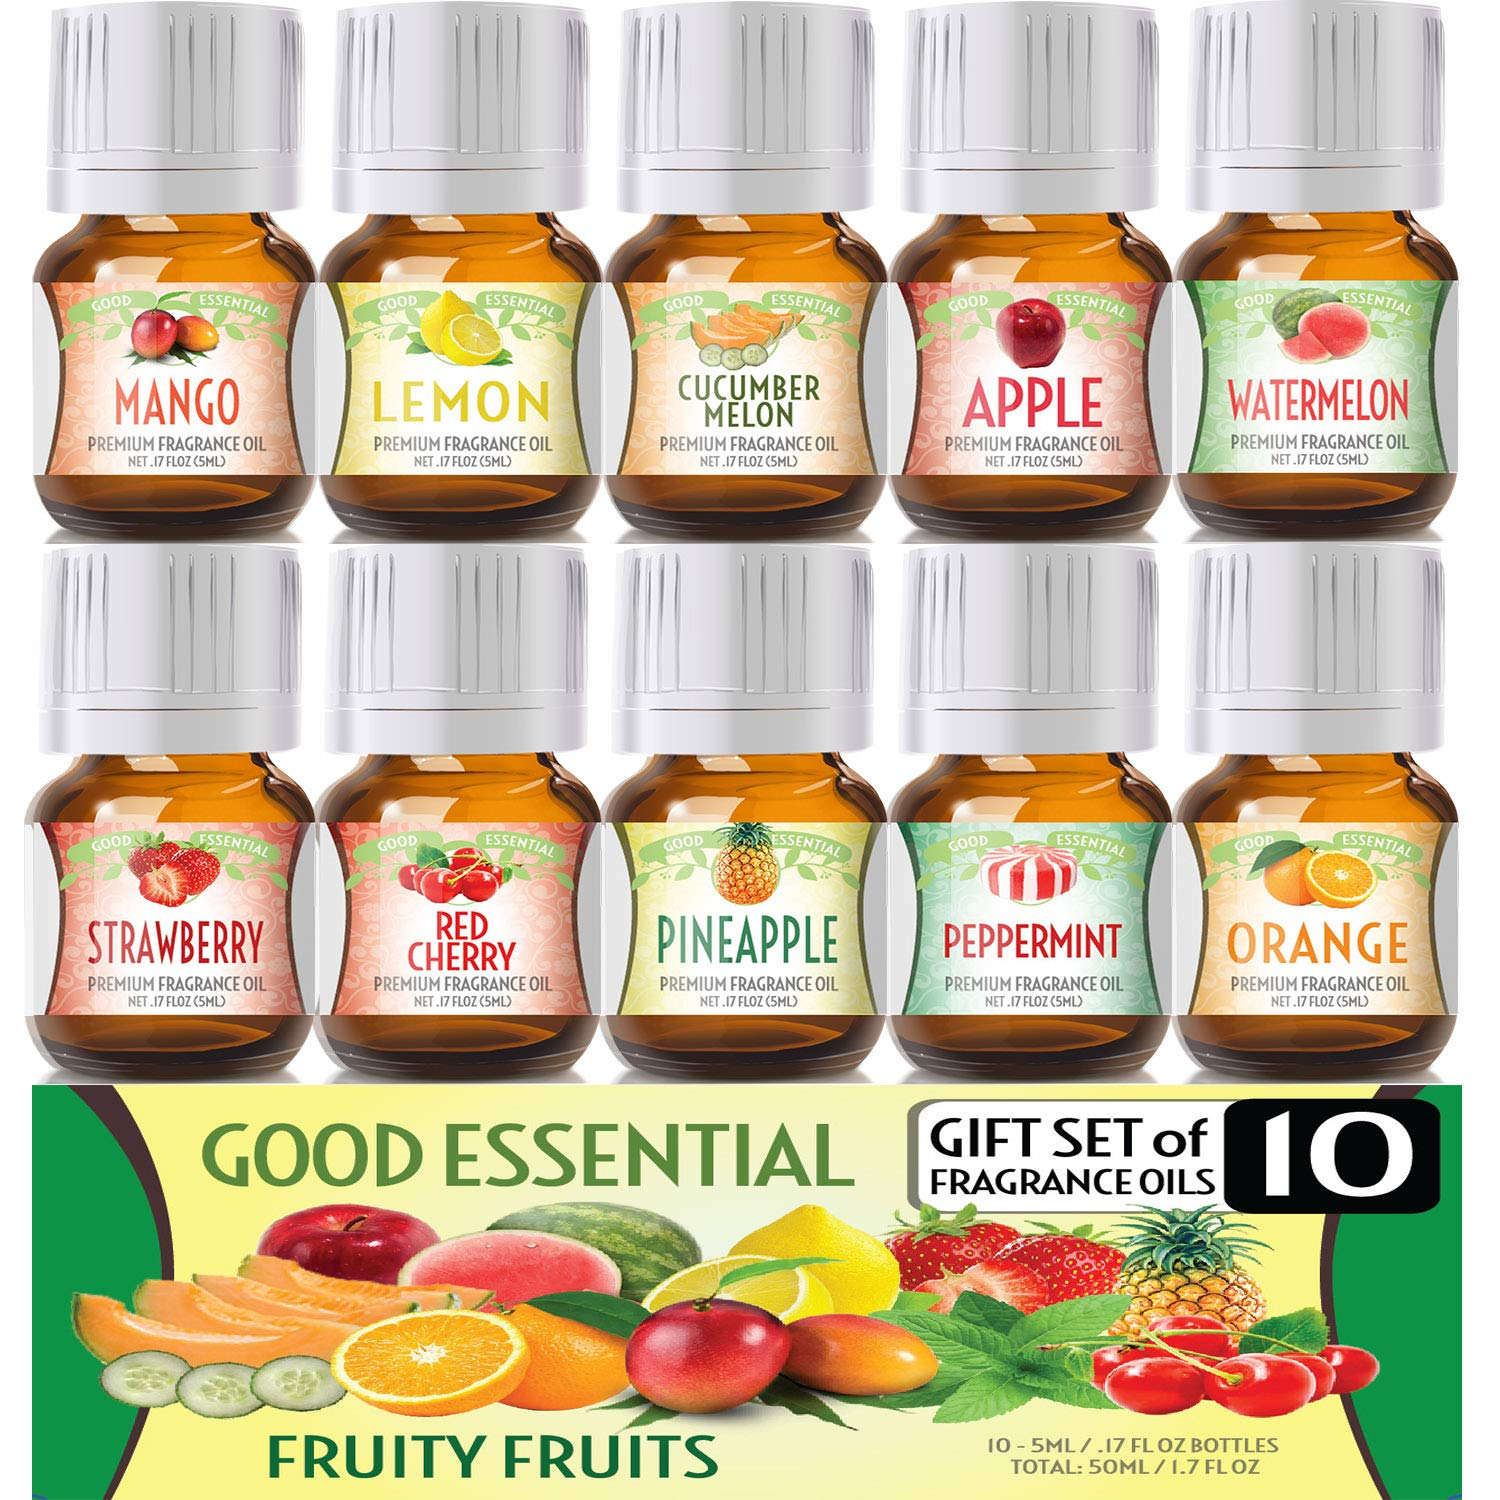 Fruity Fruits Good Essential Fragrance Oil Set (PACK OF 10) 5ml Set Includes Strawberry, Apple, Watermelon, Pineapple, Cucumber Melon, Red Cherry, Mango, Peppermint, Lemon, and Orange by Good Essential